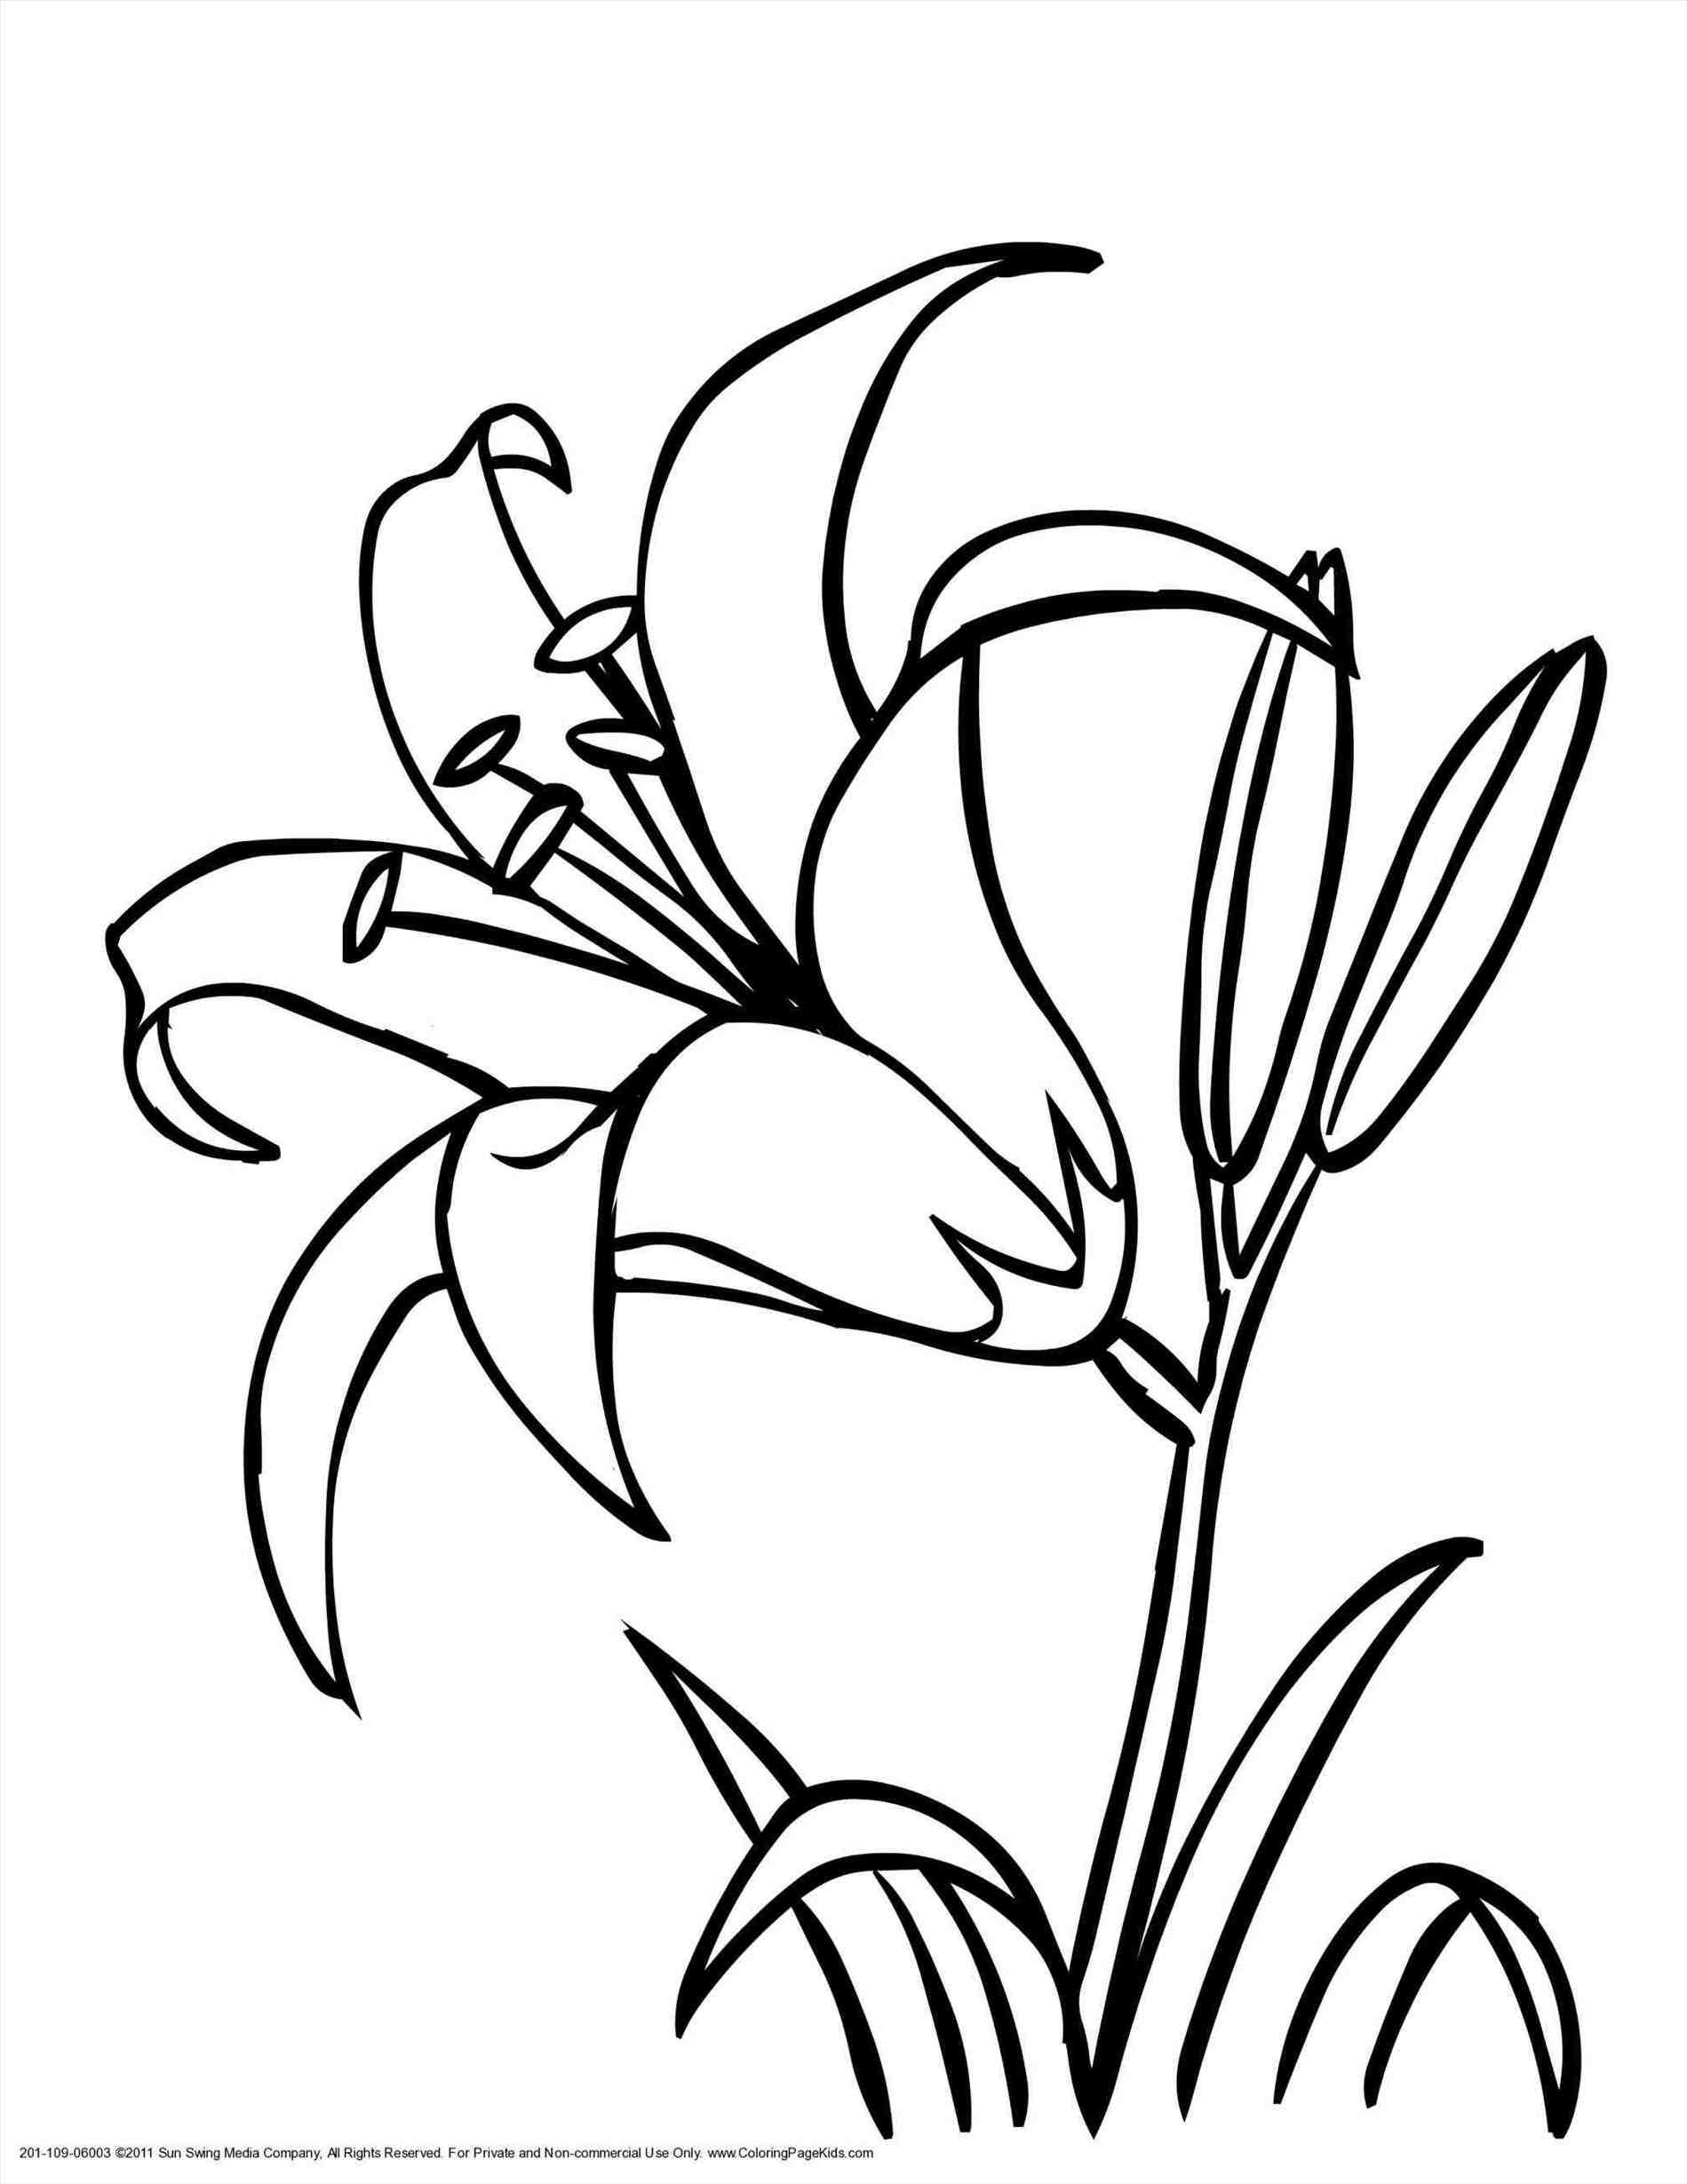 lily flower drawing 1000 images about flowers drawings of lily on pinterest lily flower drawing